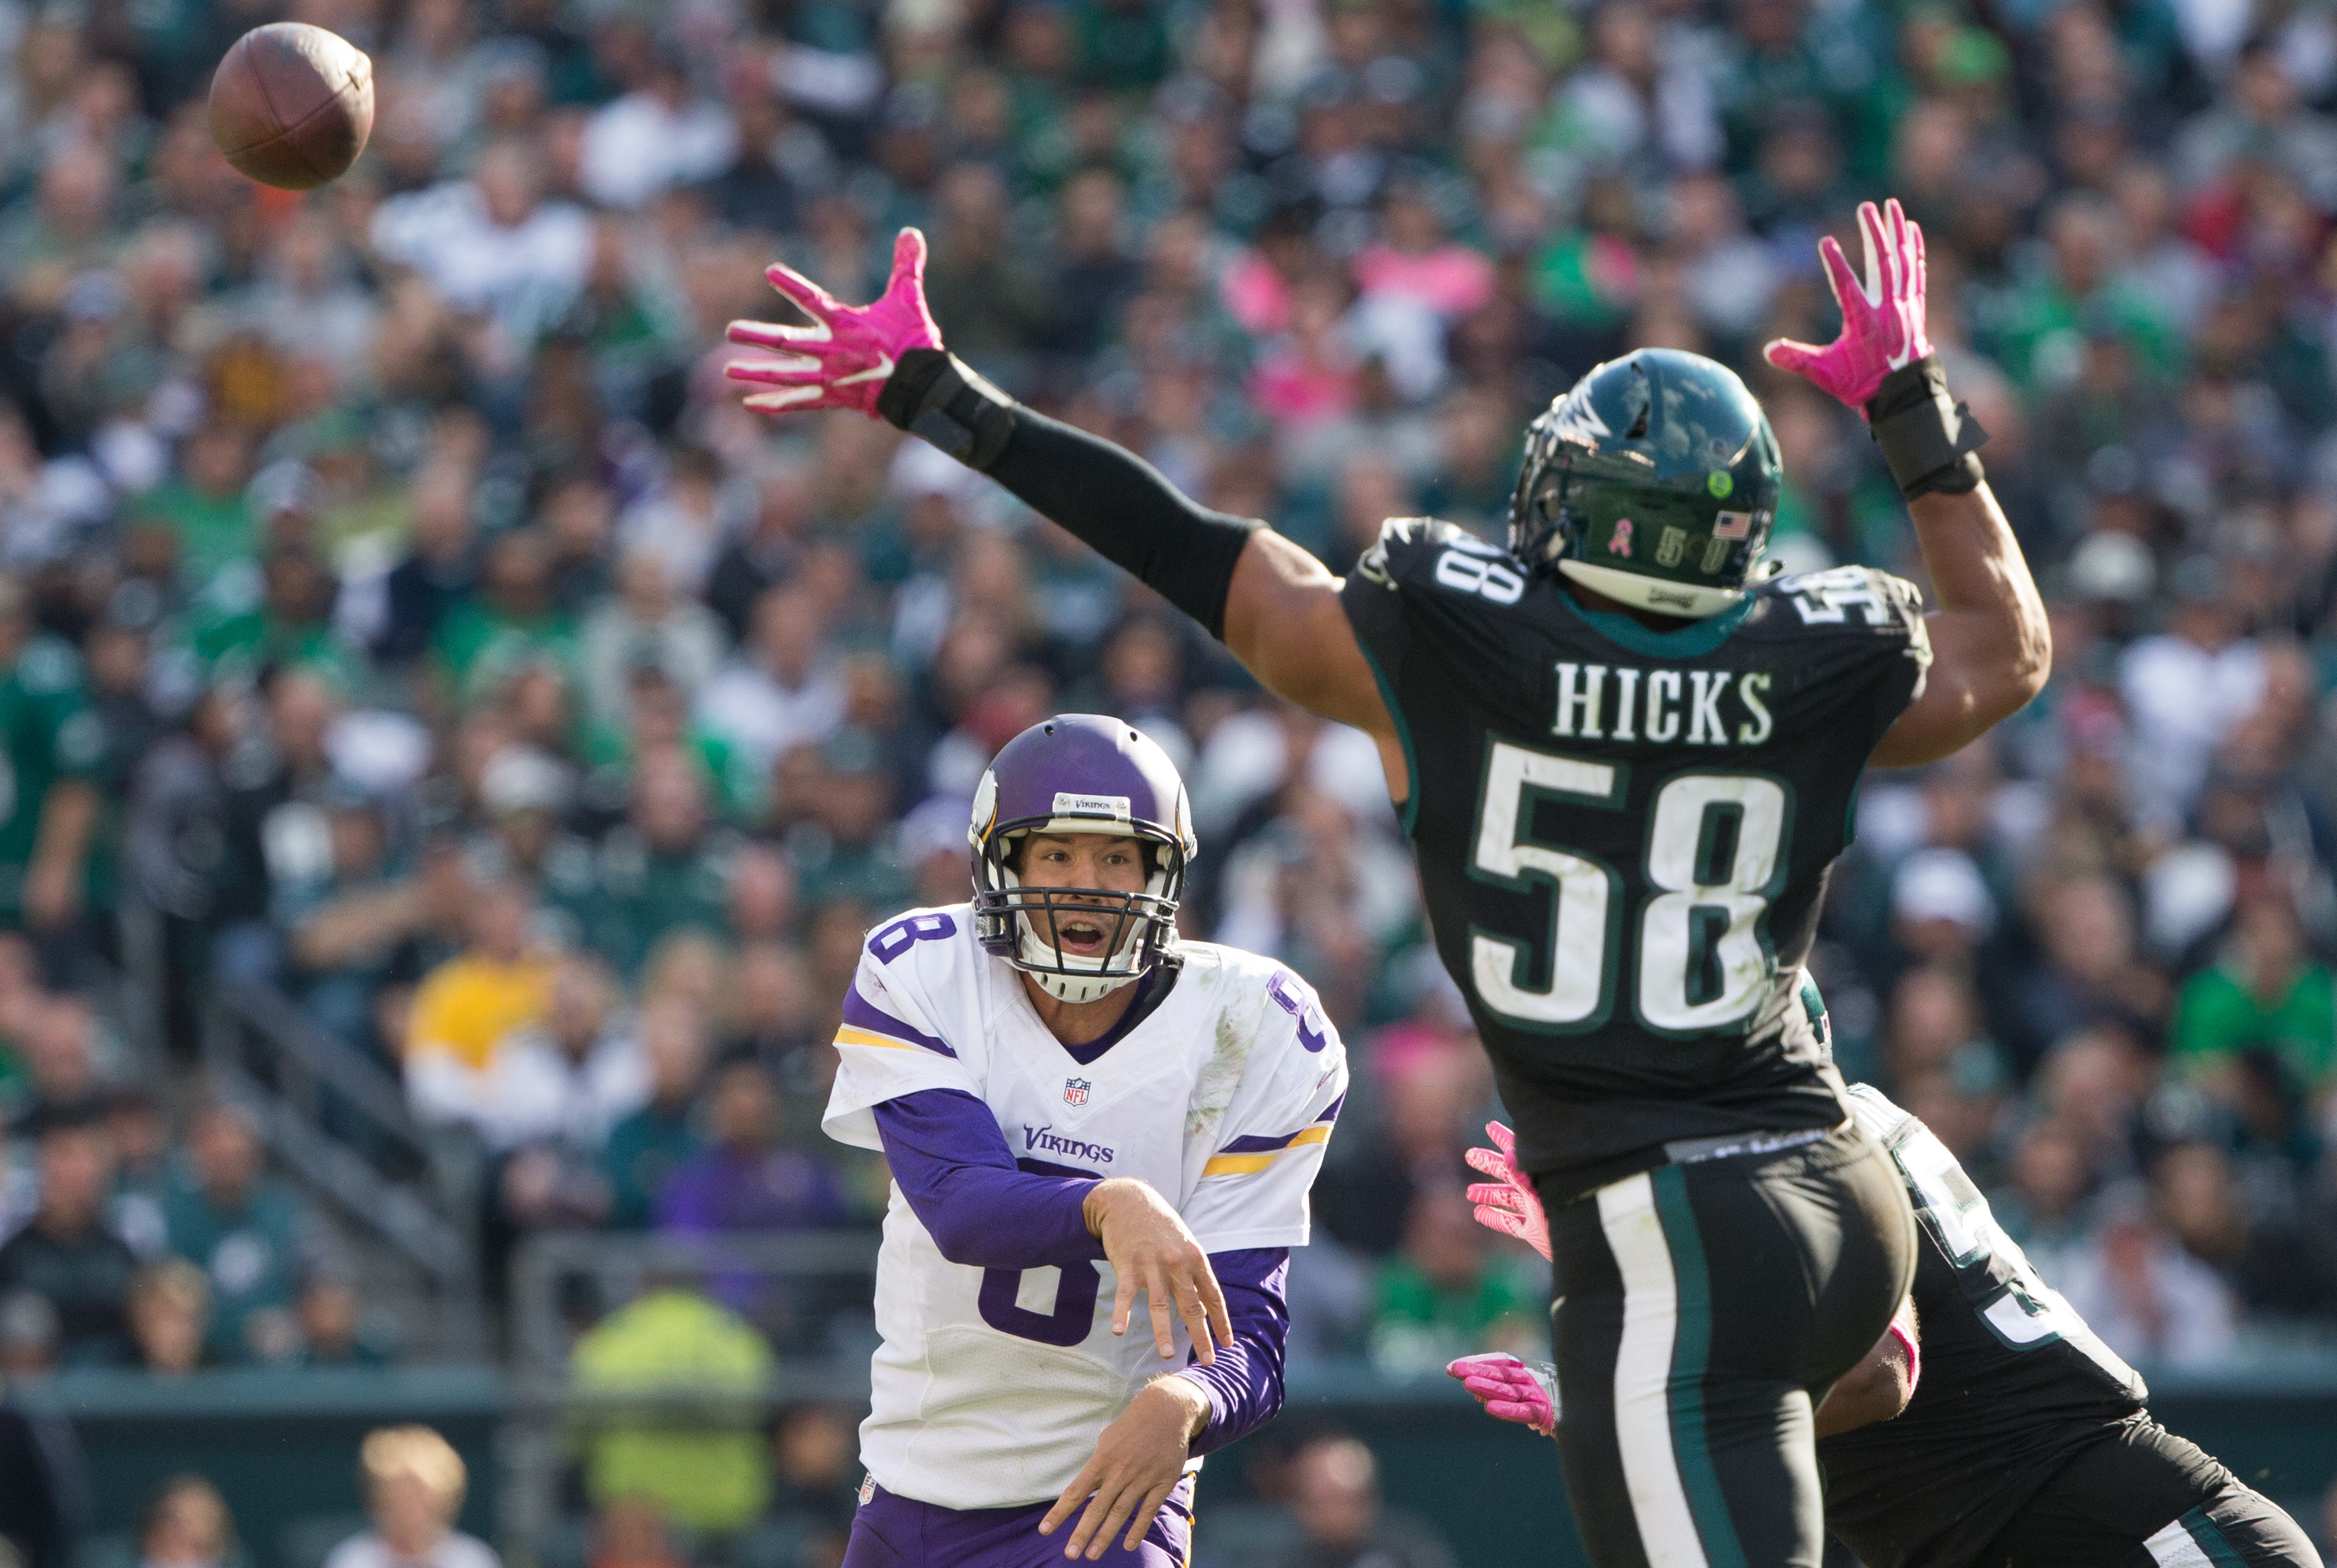 9627972-nfl-minnesota-vikings-at-philadelphia-eagles